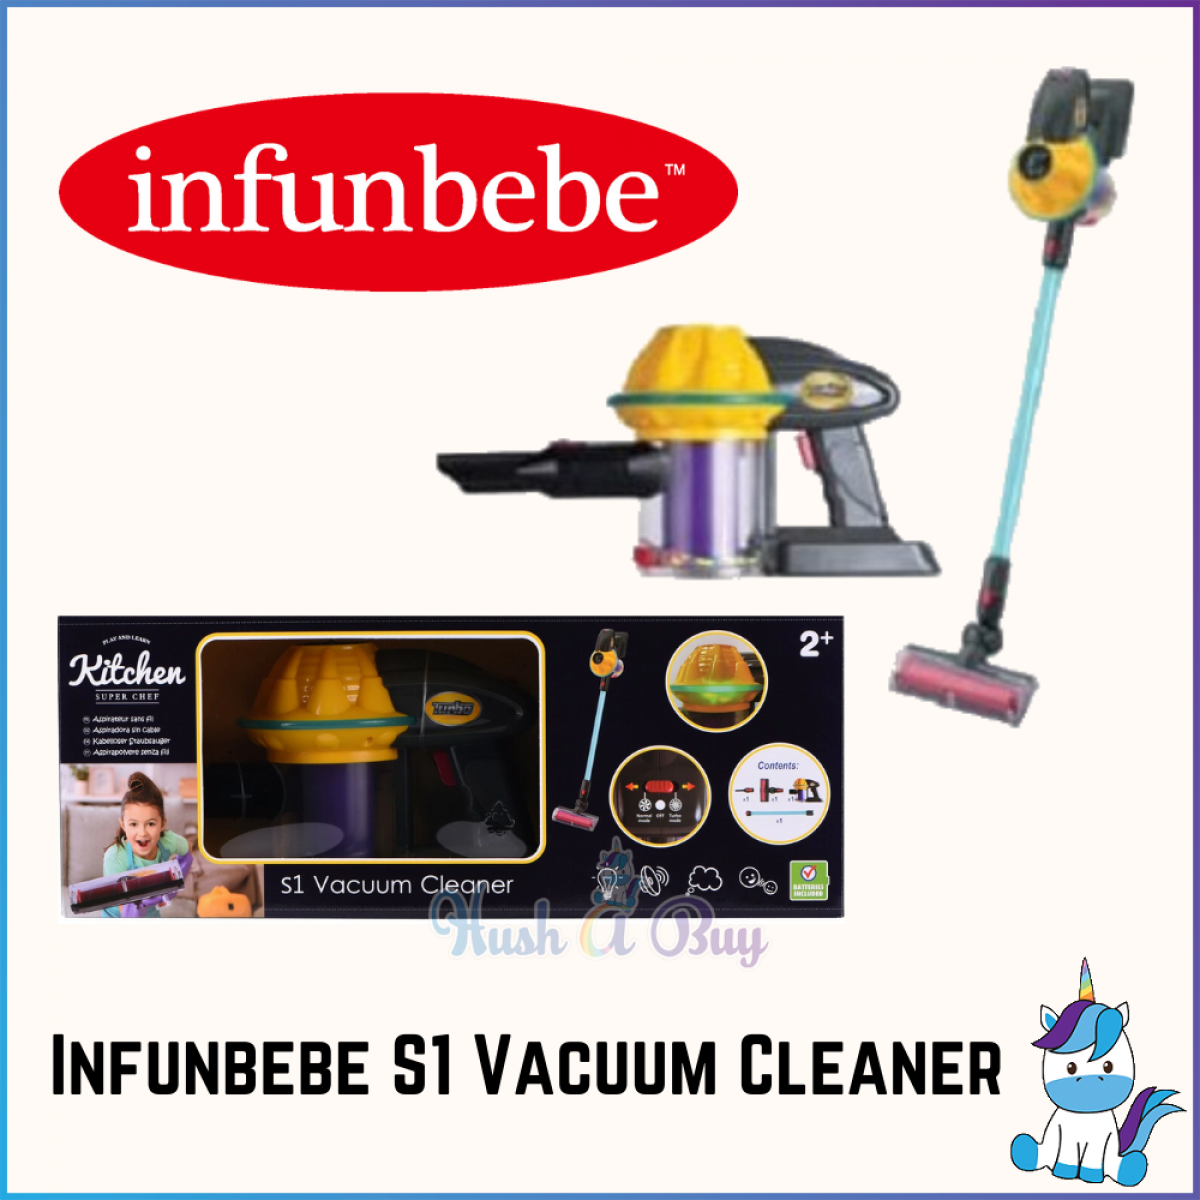 Infunbebe 1st Vacuum Cleaner - Kids Toys and Games - Role Play - Age 2+